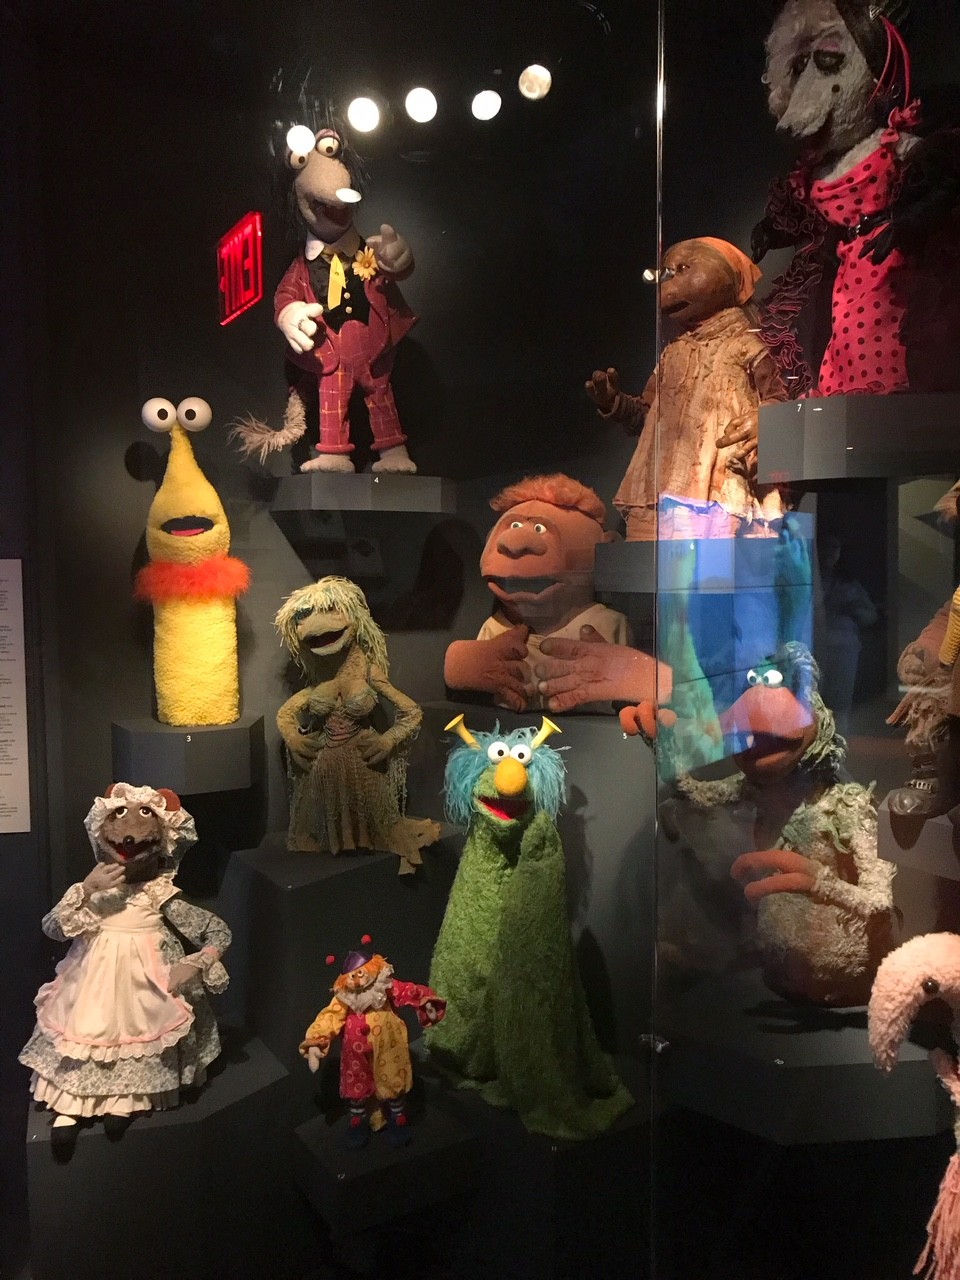 The Jim Henson Exhibition at the Museum of the Moving Image